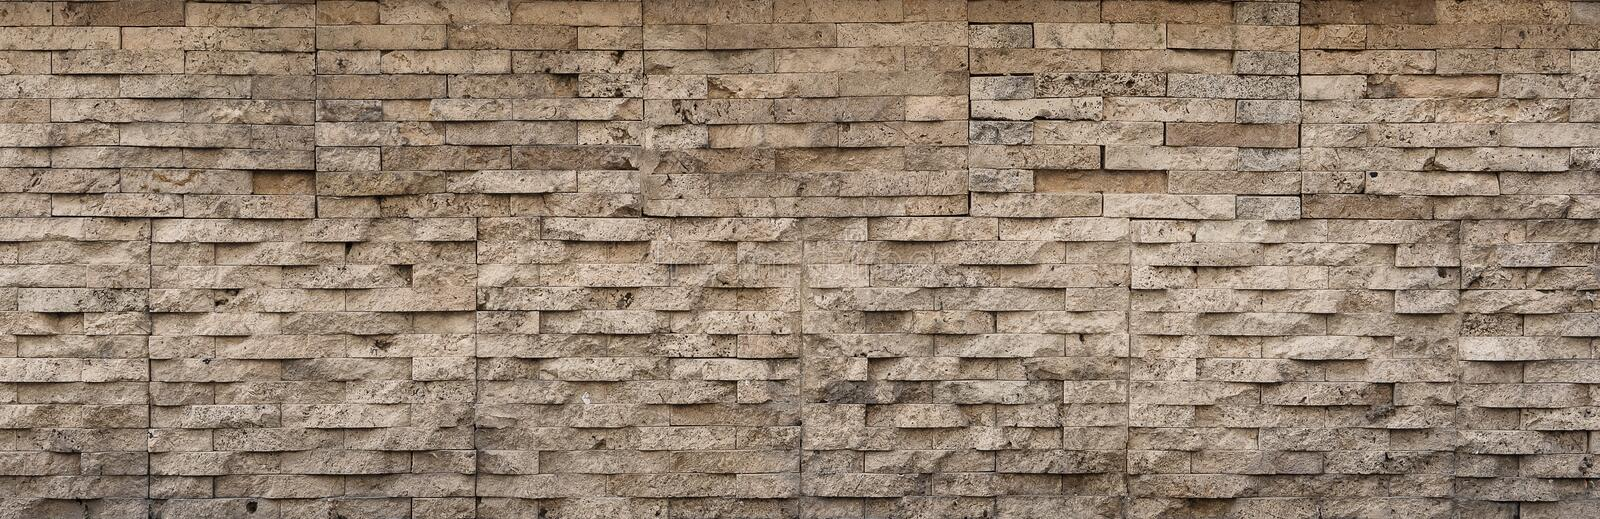 Brick banner, stone pattern with grunge texture. Decorative tile surface closeup, rock background stock photo